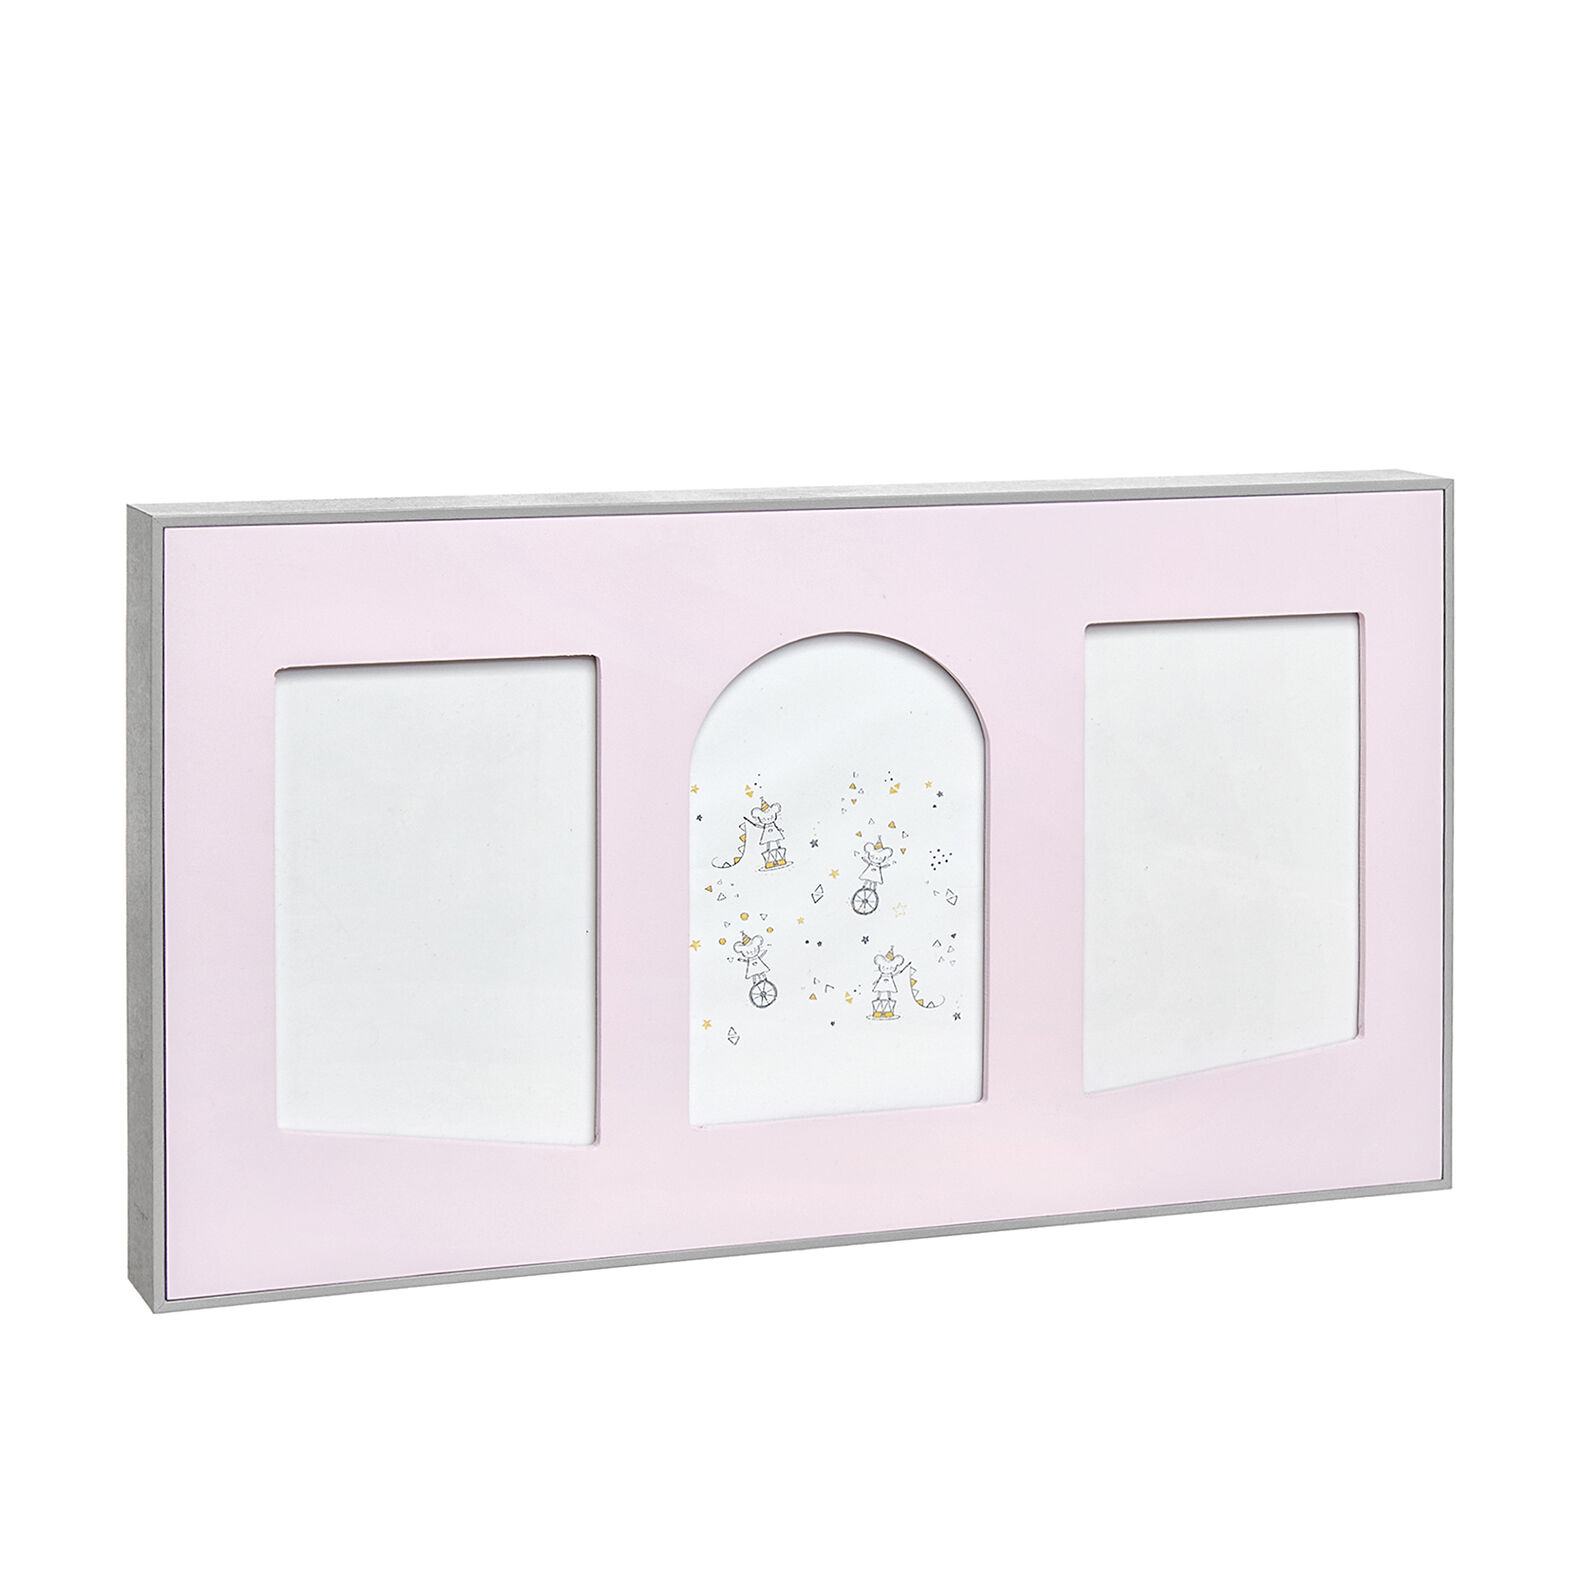 Photo frame with arc-shaped mount board